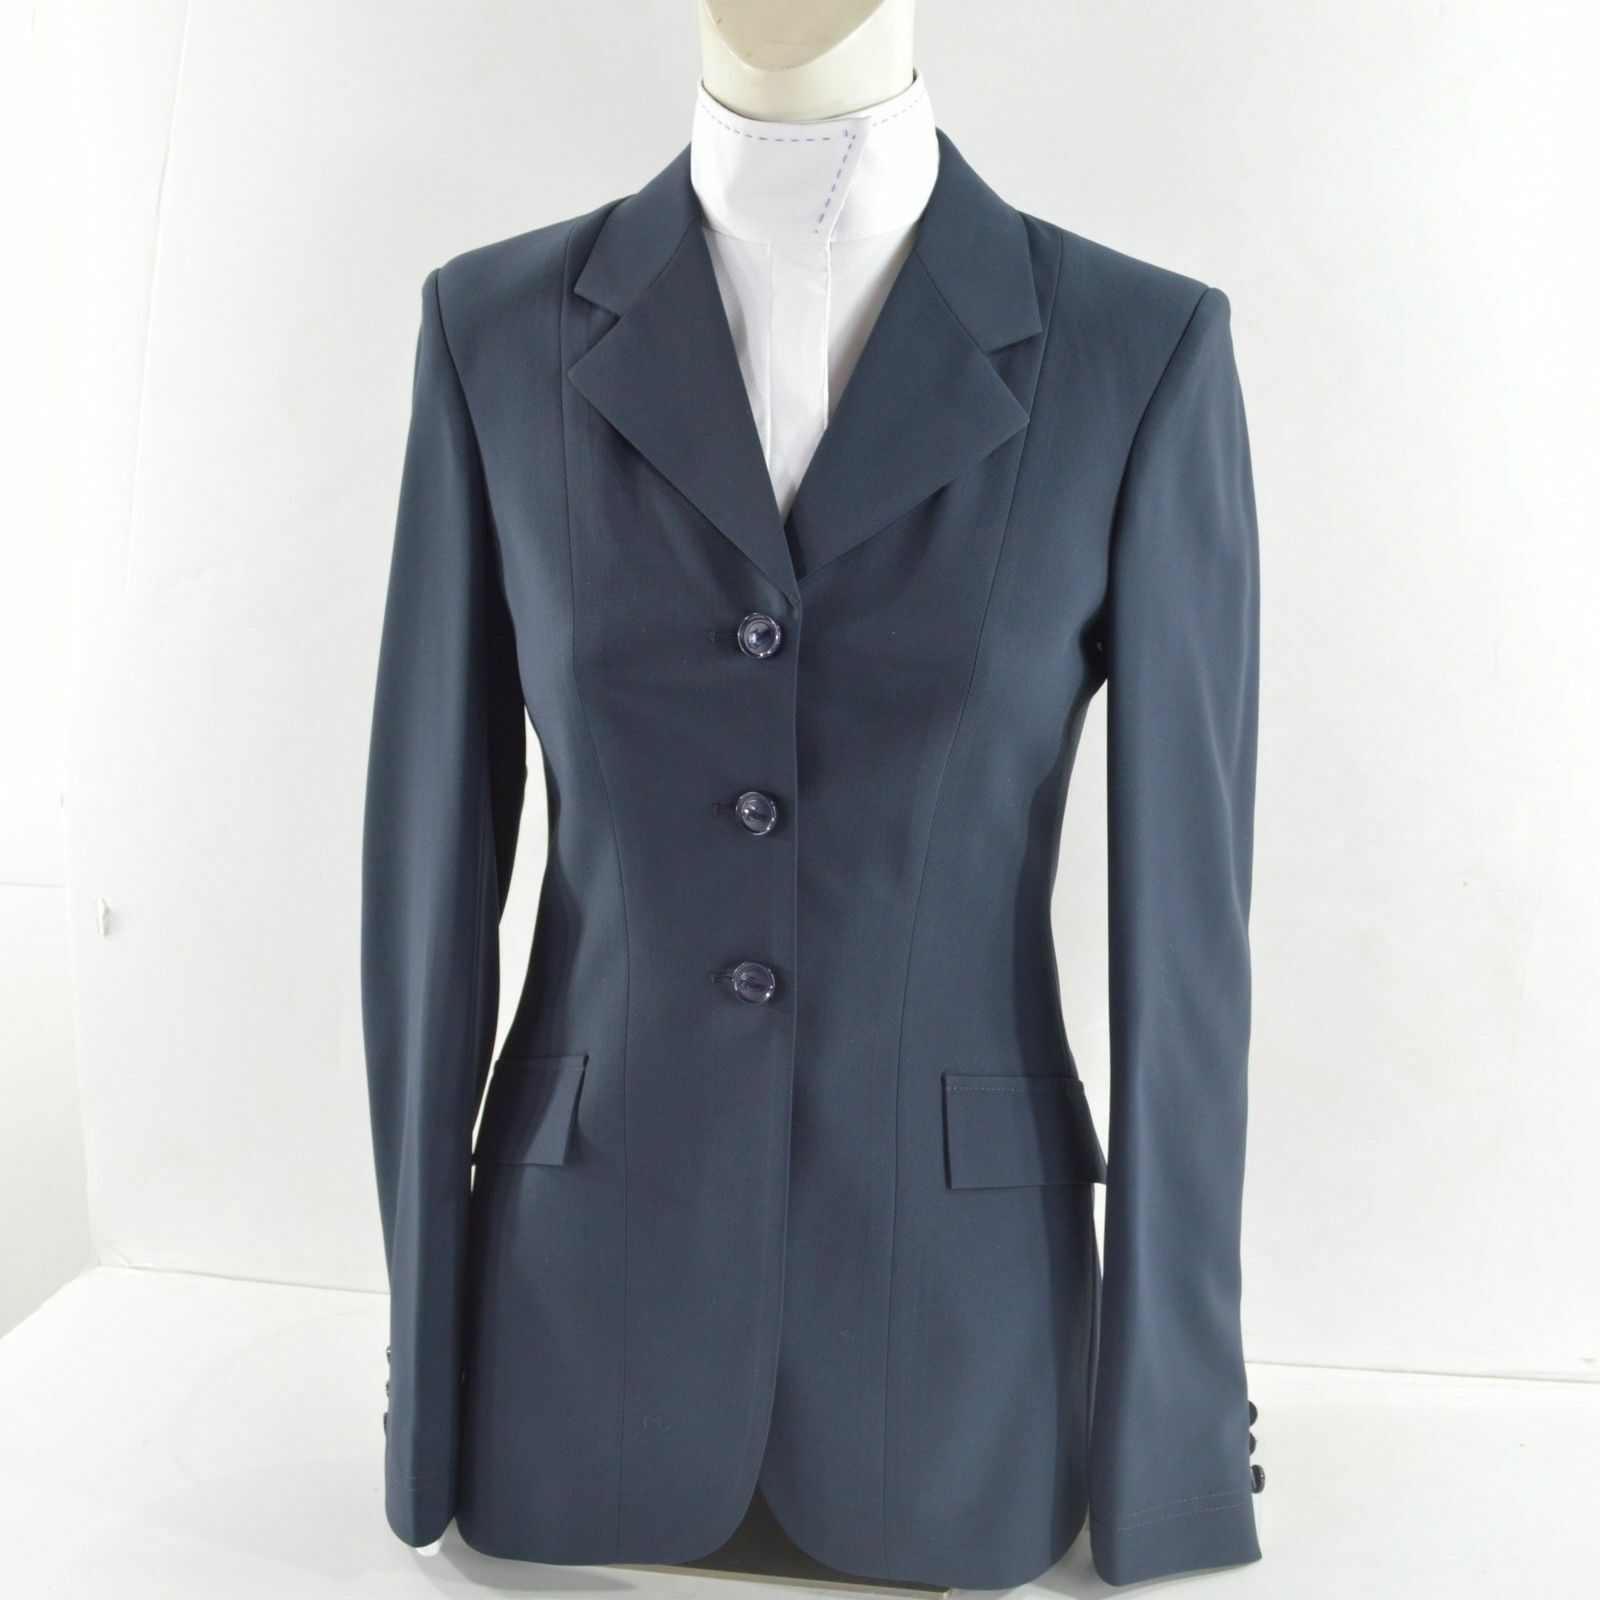 Grand Prix Tech Lite Ladies Hunt Coat - NAVY - L6937 - Different Sizes